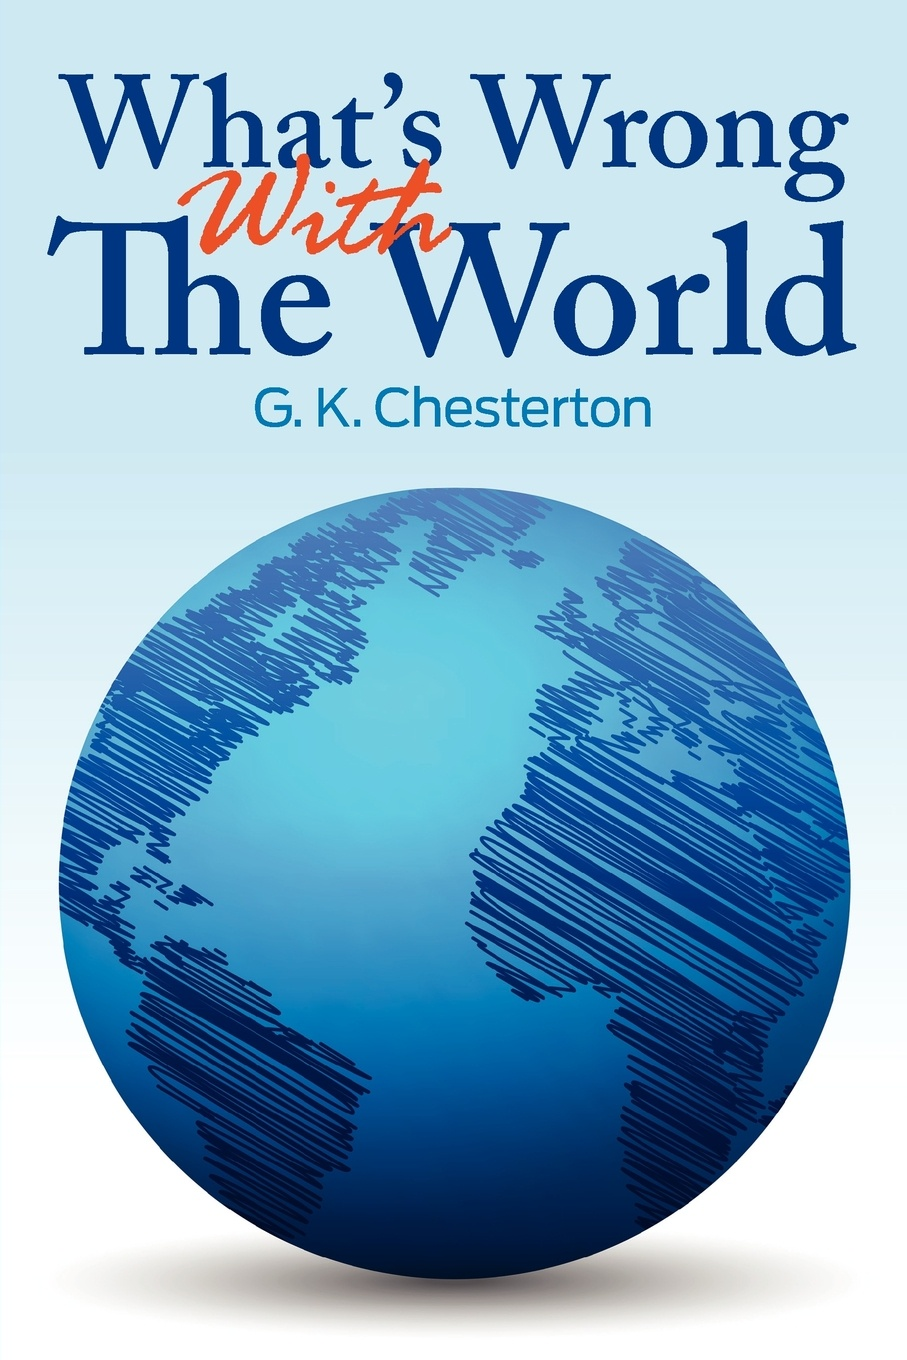 цена на G. K. Chesterton What's Wrong With The World